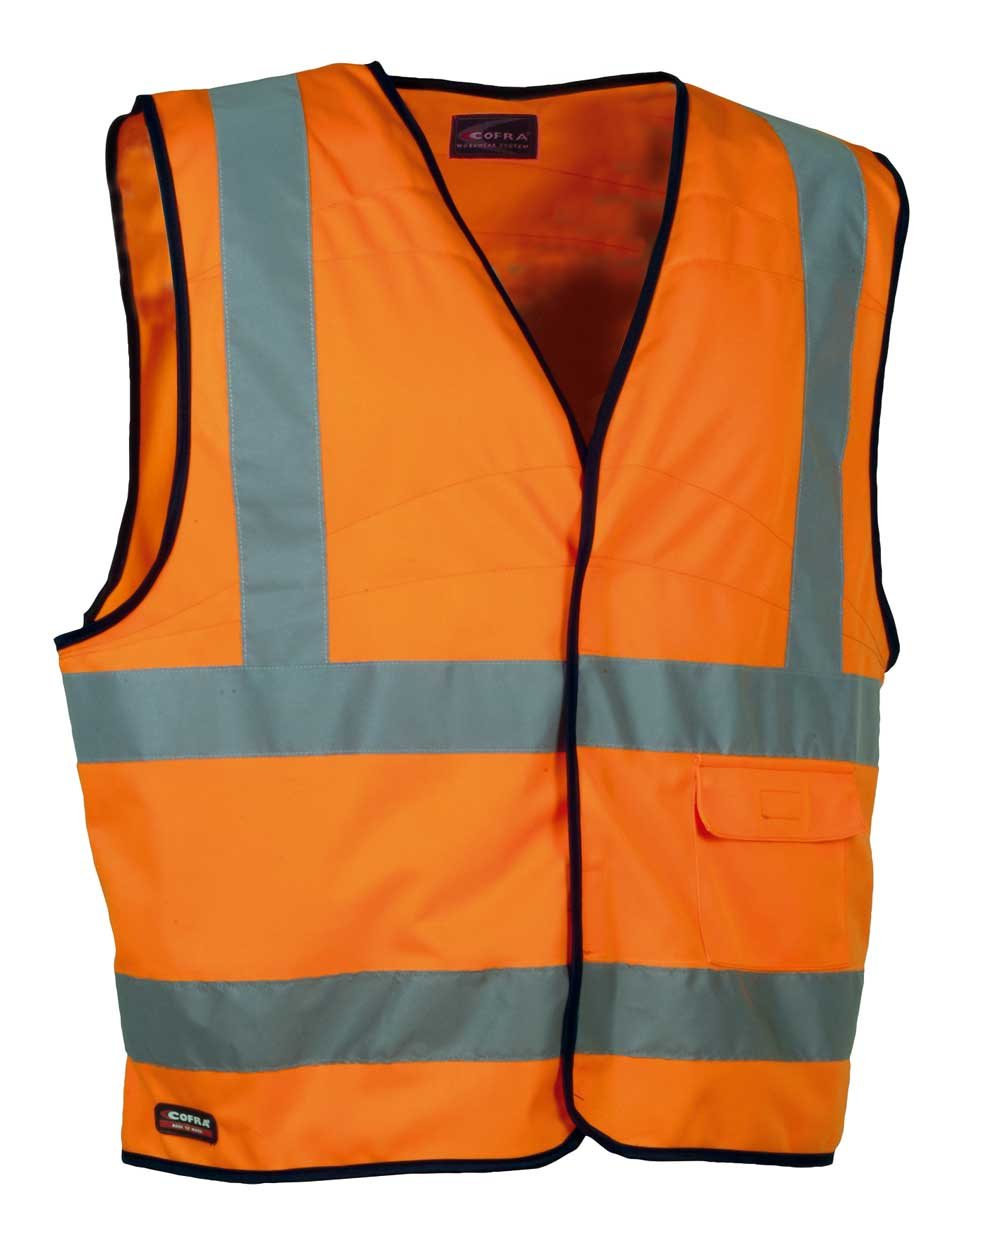 Cofra CLEAR High Visibility Waistcoat (orange) Size L